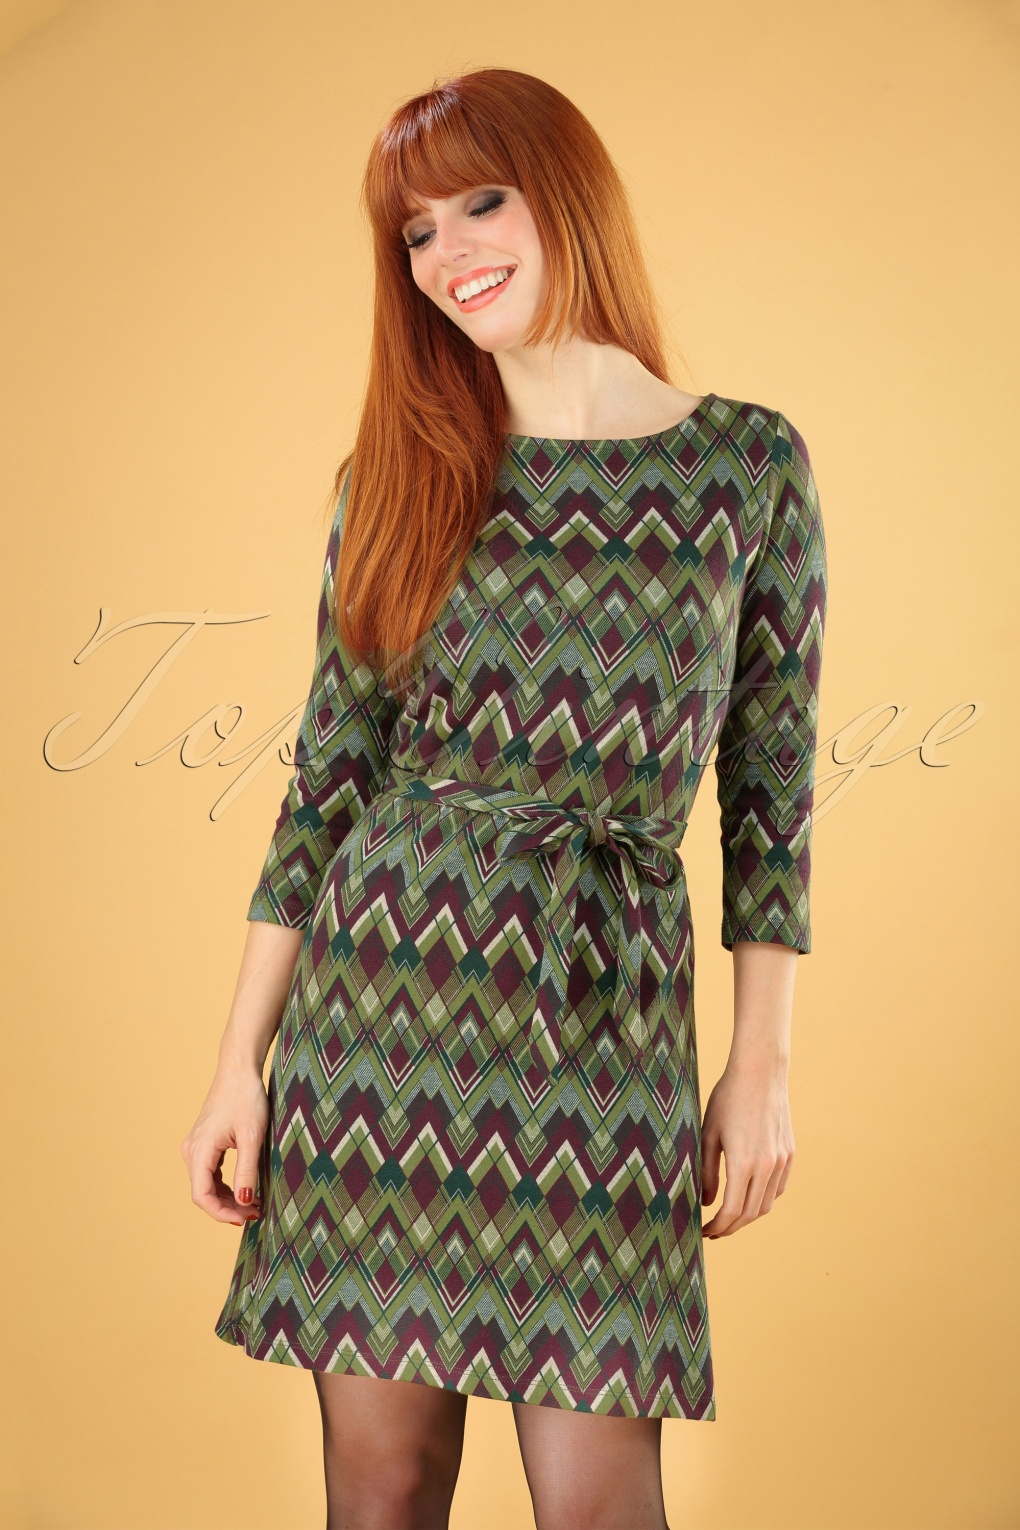 Vintage Inspired Dresses & Clothing UK 60s Zoe Skye Dress in Posey Green £80.18 AT vintagedancer.com